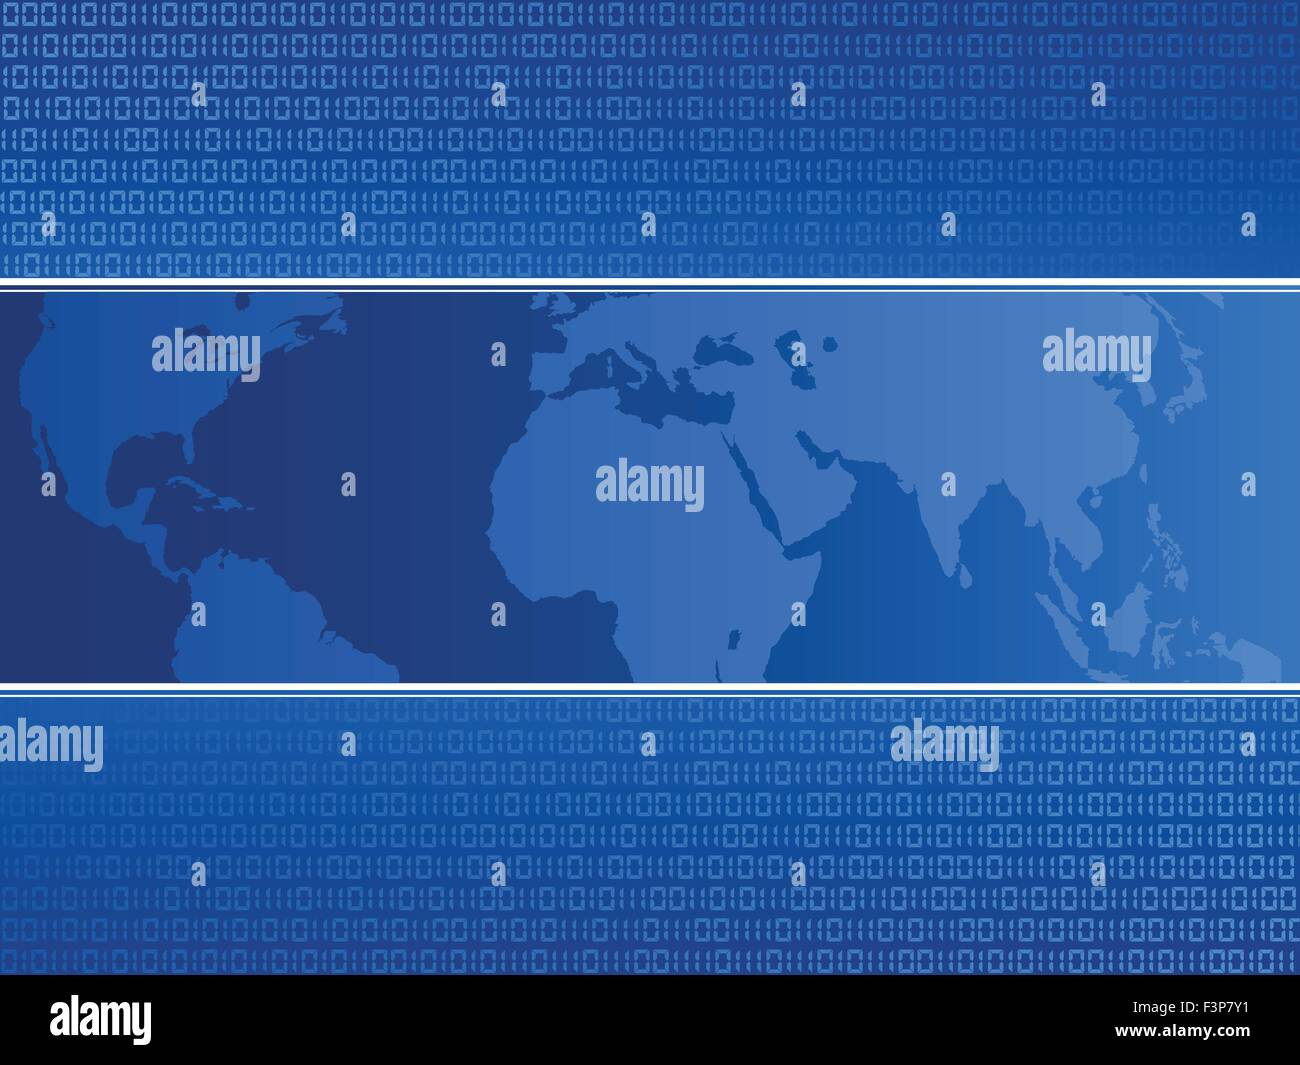 Abstract Blue World Map Binary Stock Vector Images Alamy Abstact Background With Circuit Board And Code